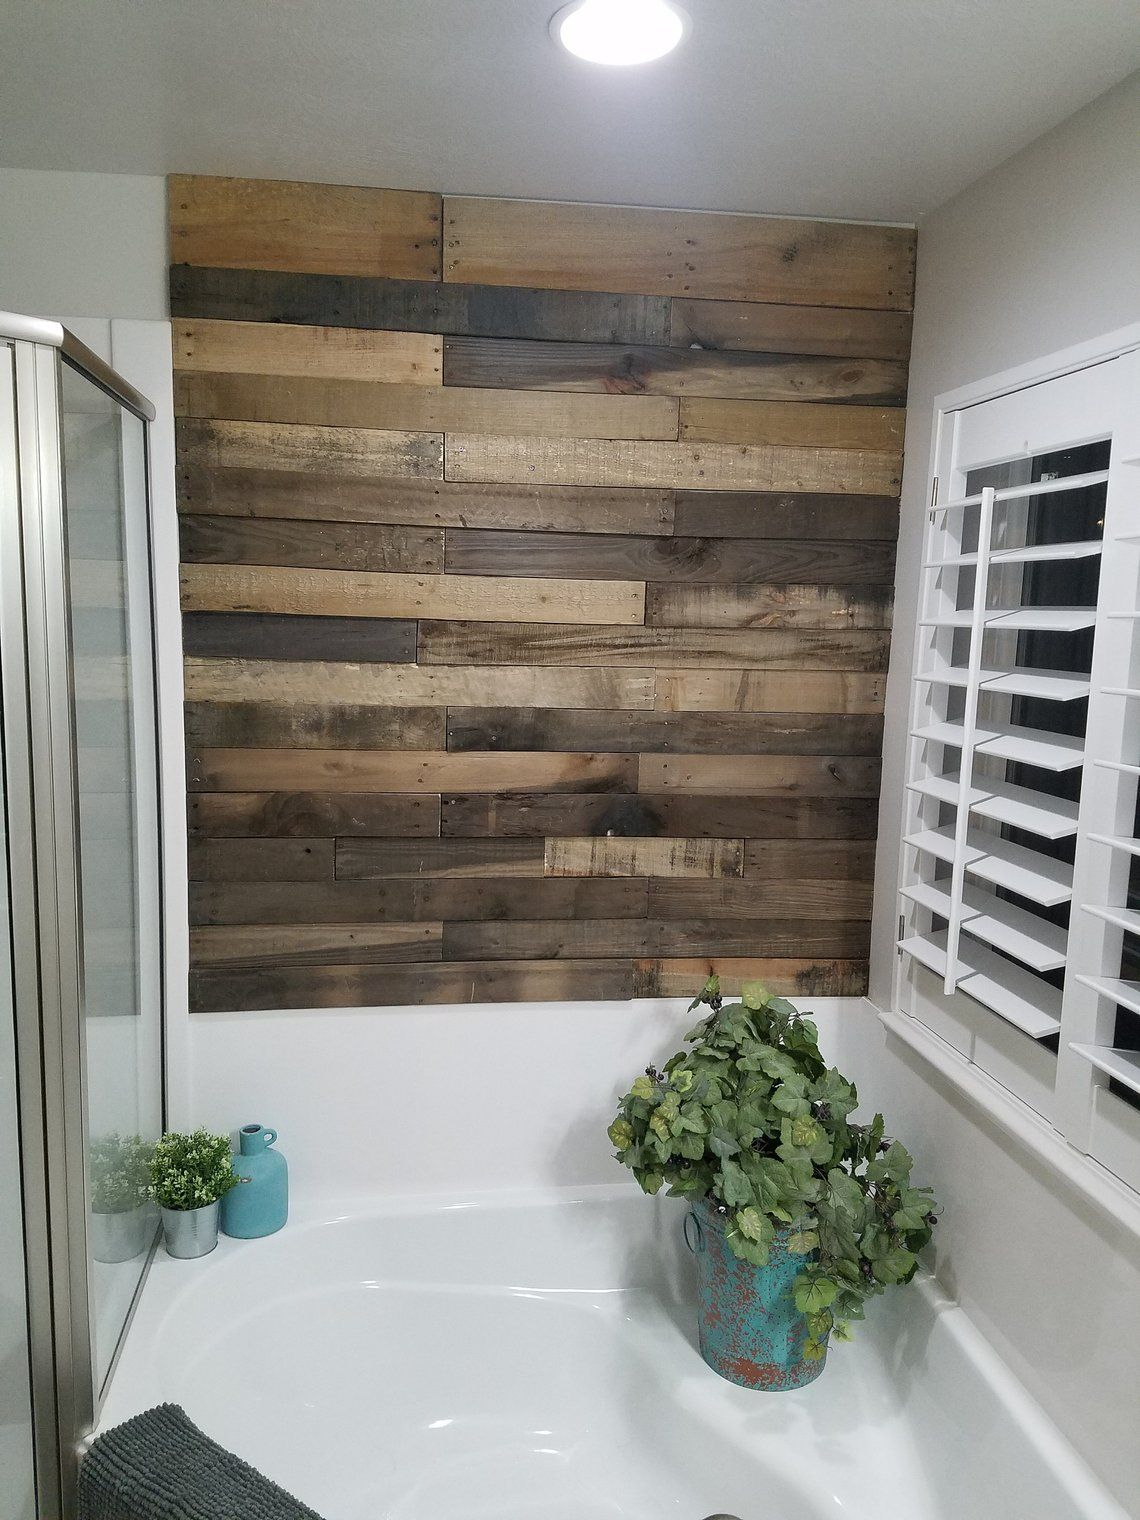 Pre-Stained Pallet Wood Accent Walls - Utah in 2020 | Wood ...